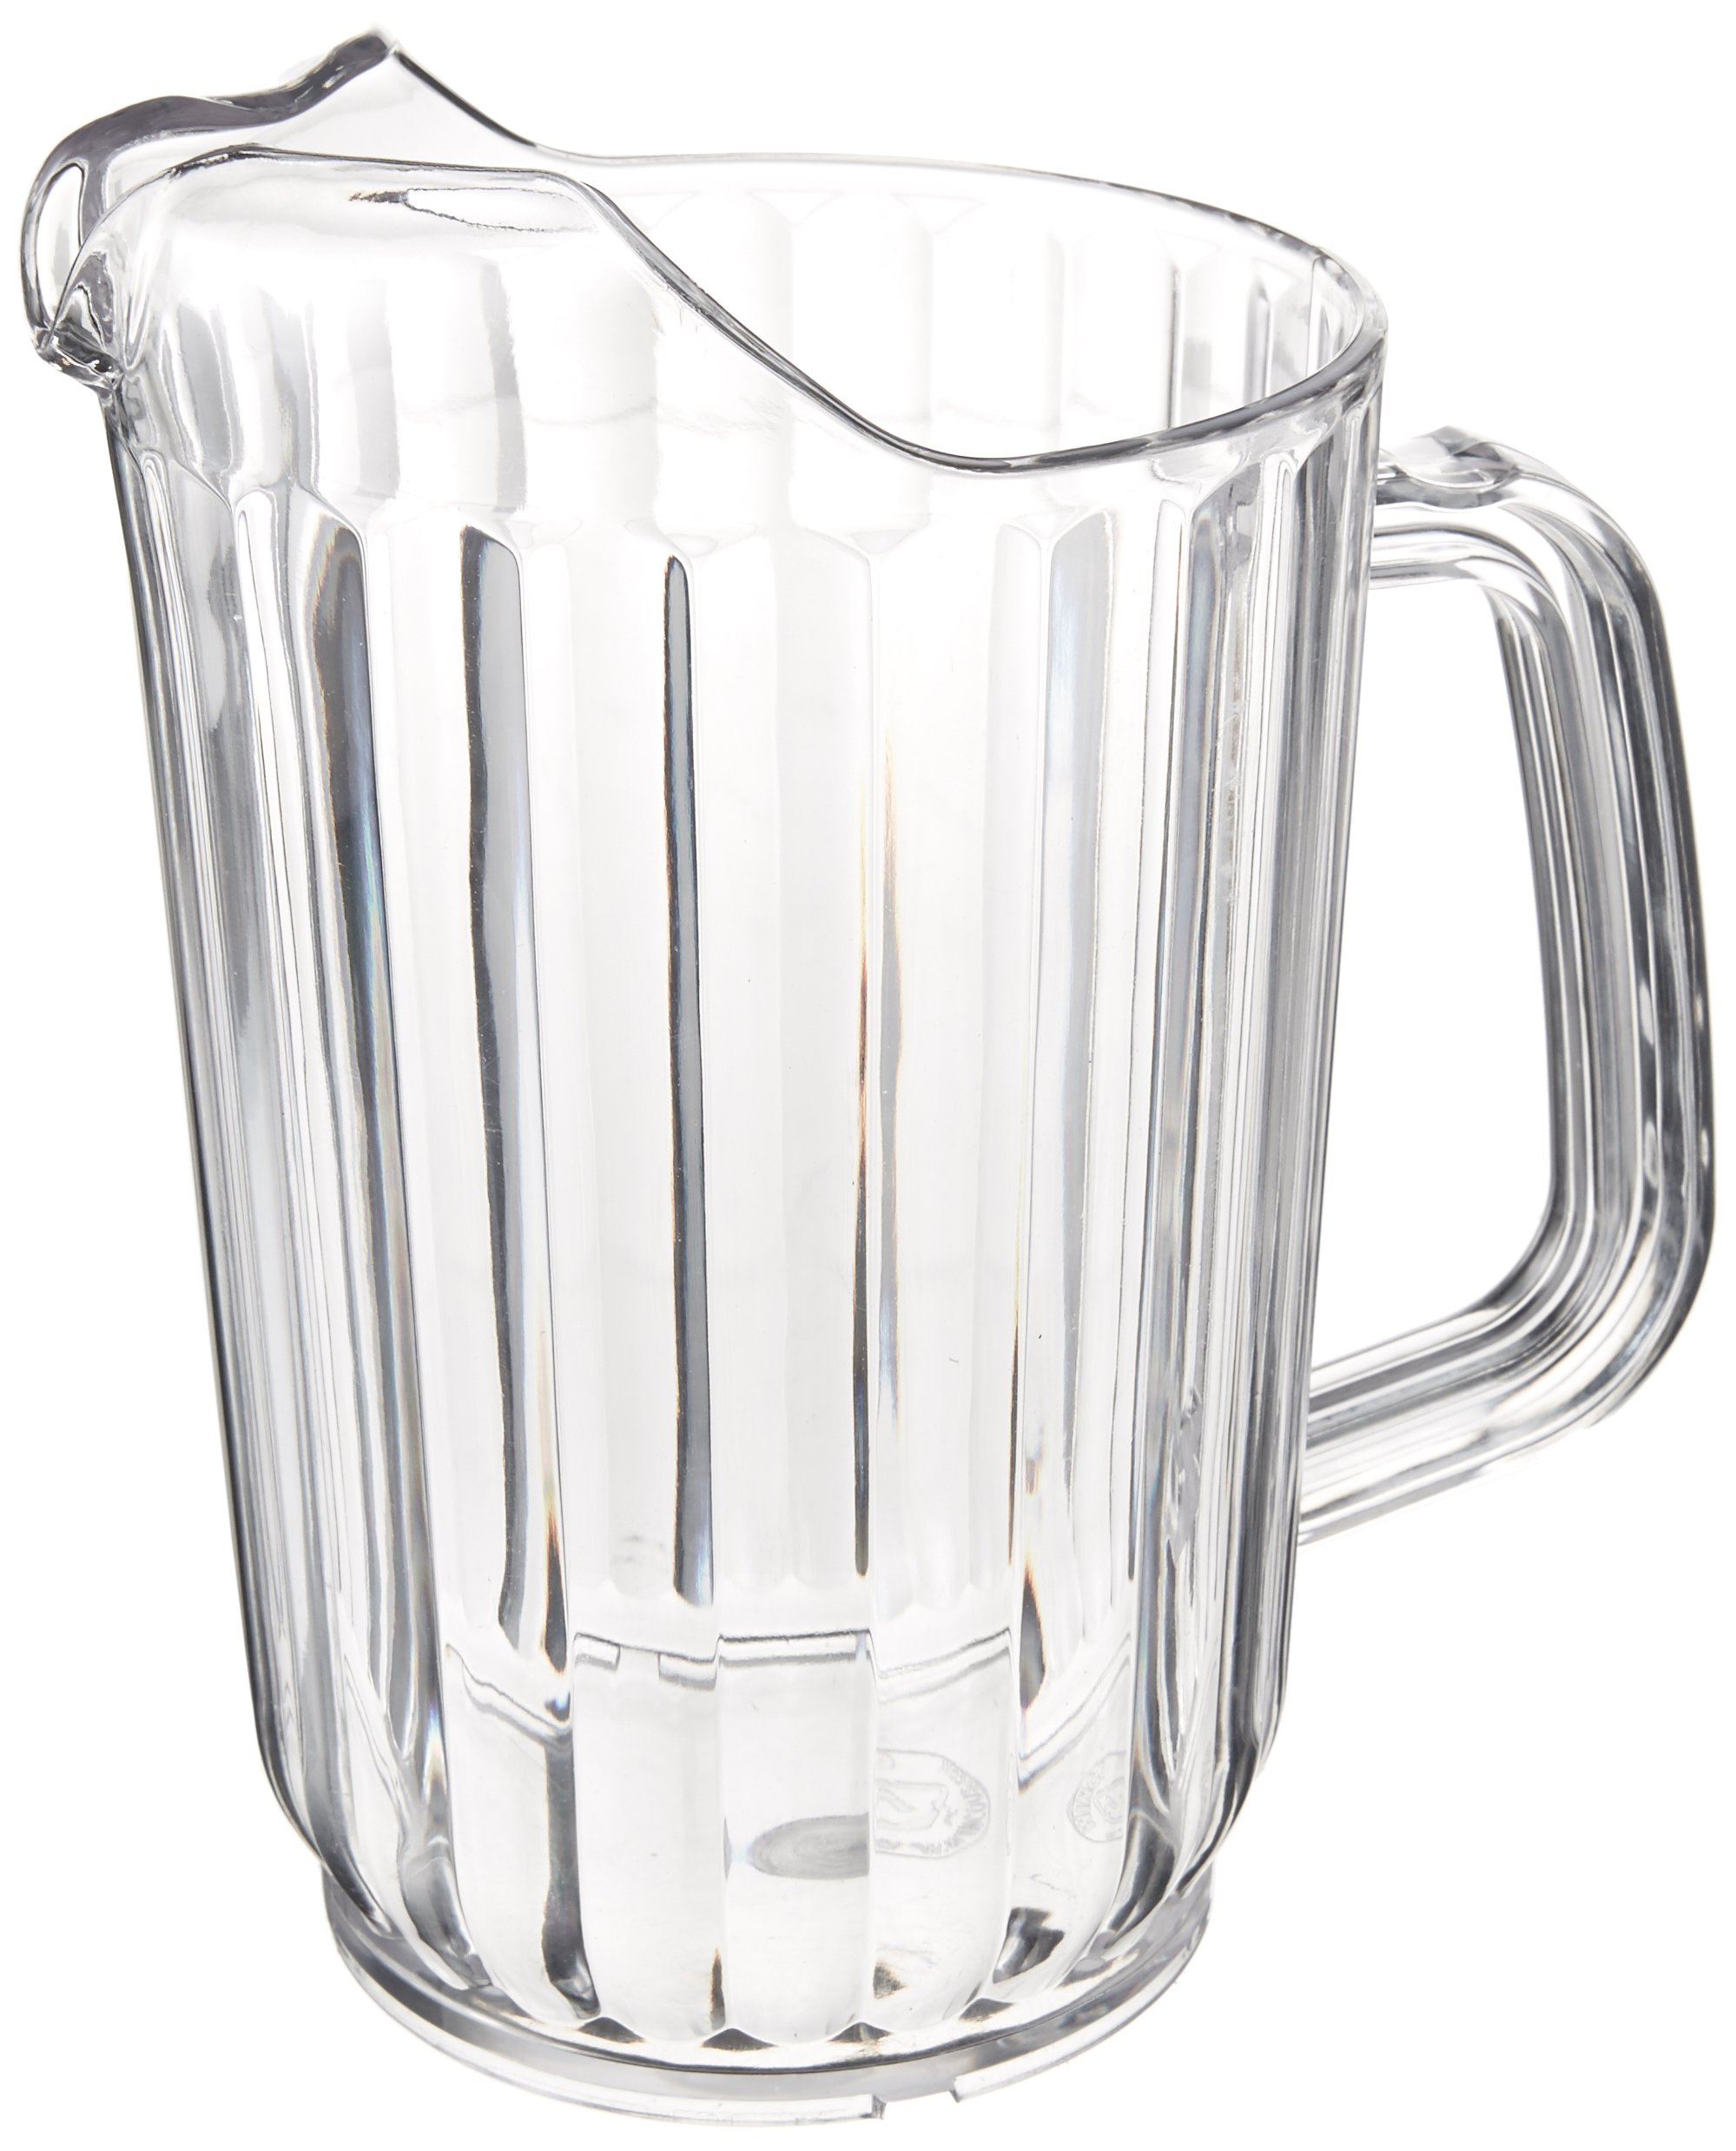 Winco Polycarbonate Clear Water Pitcher, 32 Ounce - 1 each. by Winco (Image #1)